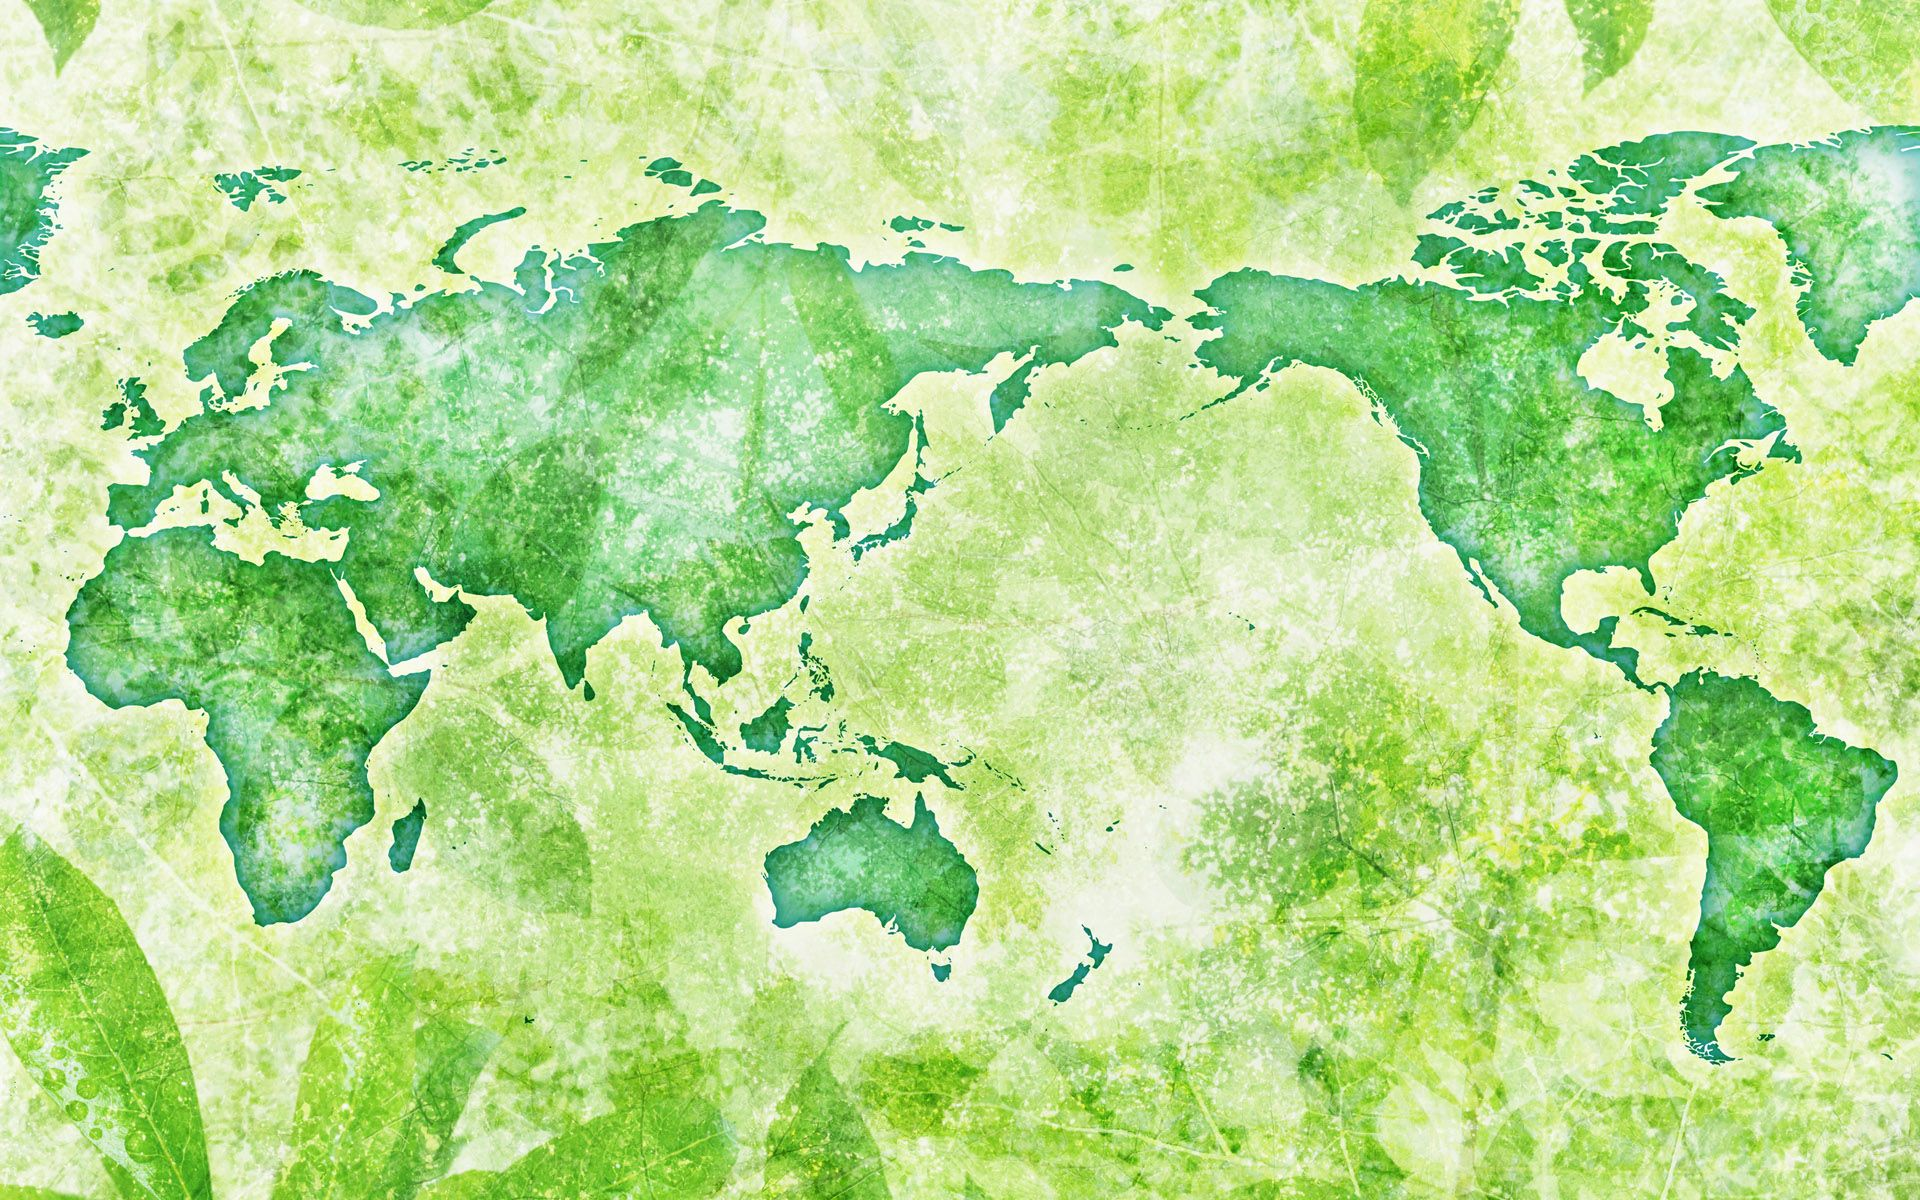 World map source wallpaperstock map lovers pinterest green earth world map source wallpaperstock gumiabroncs Image collections